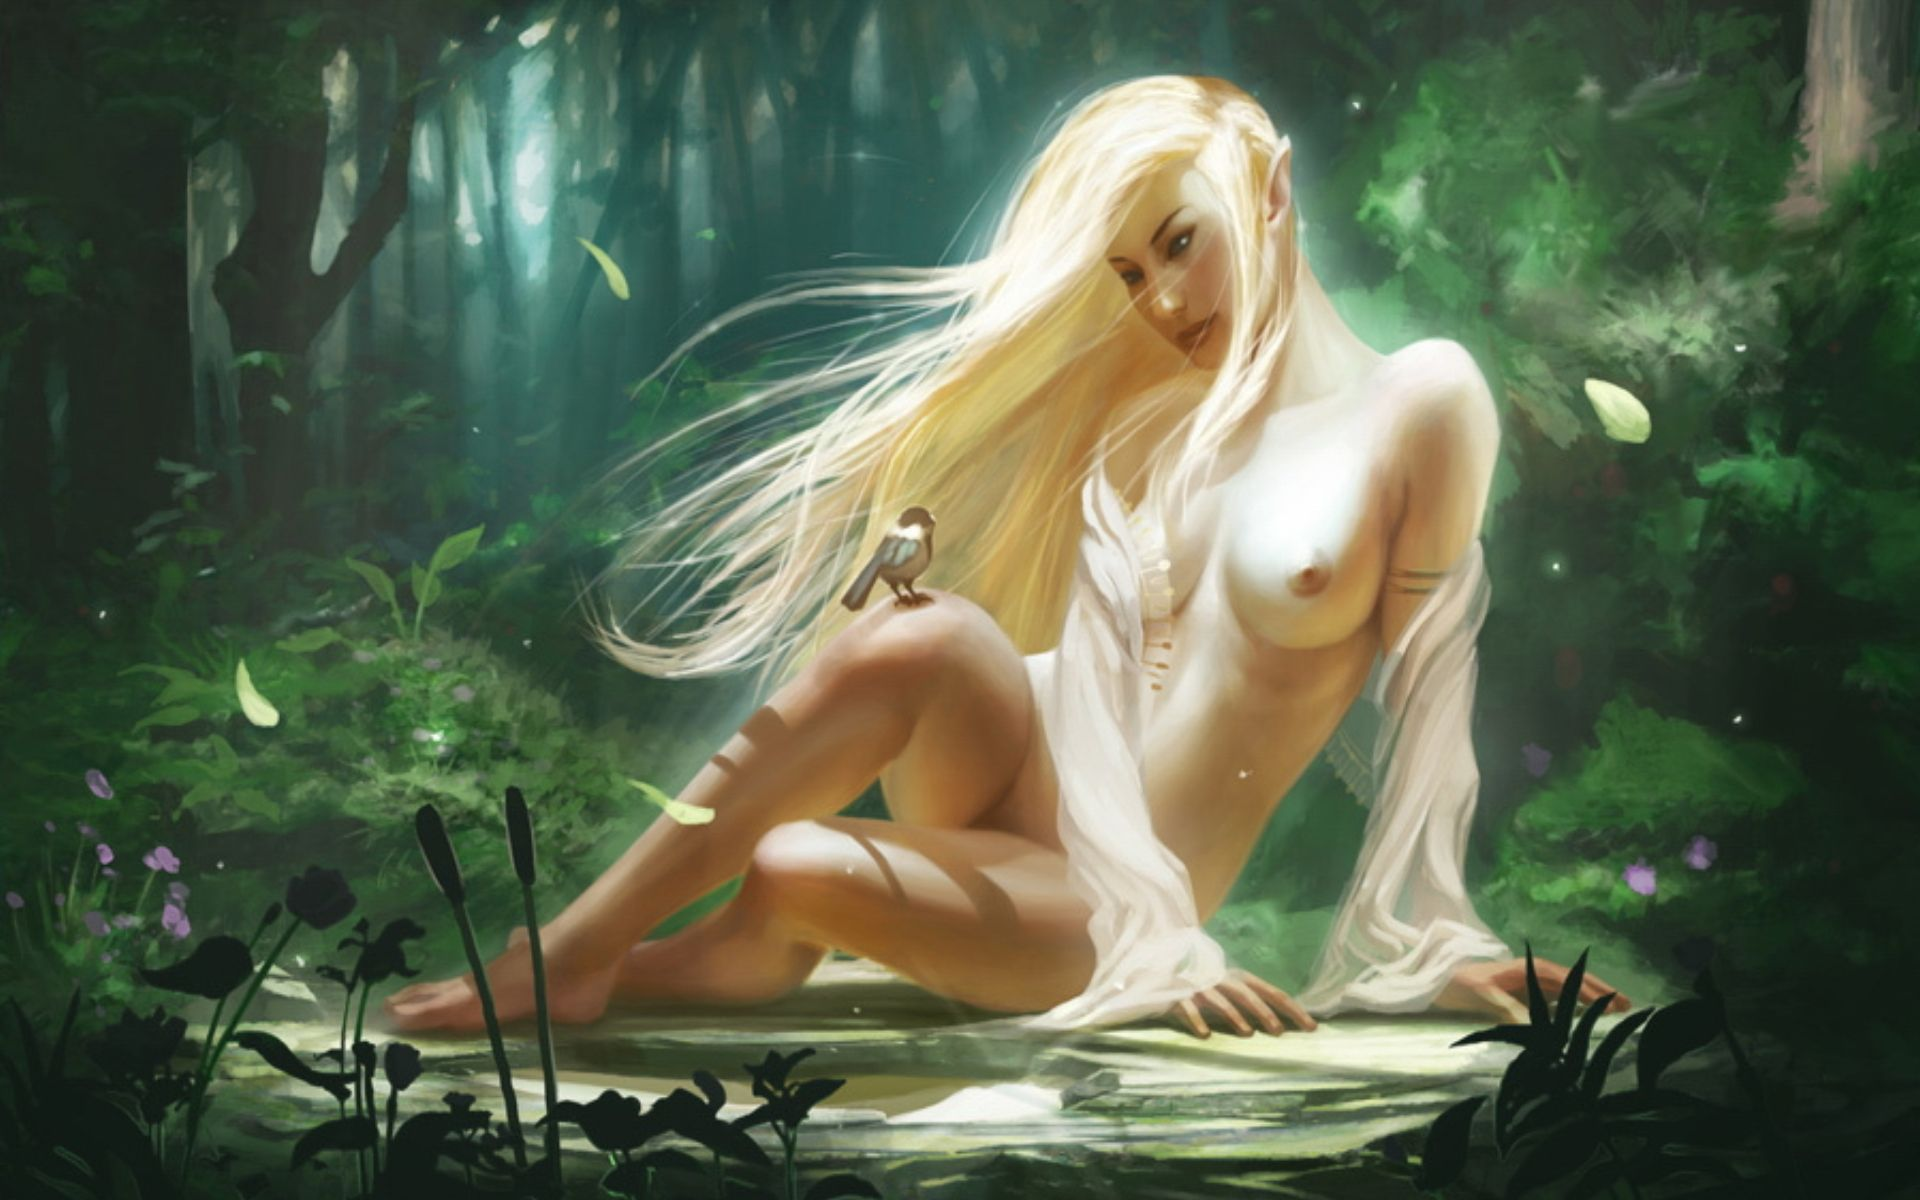 Erotic elves fantasy porn photo